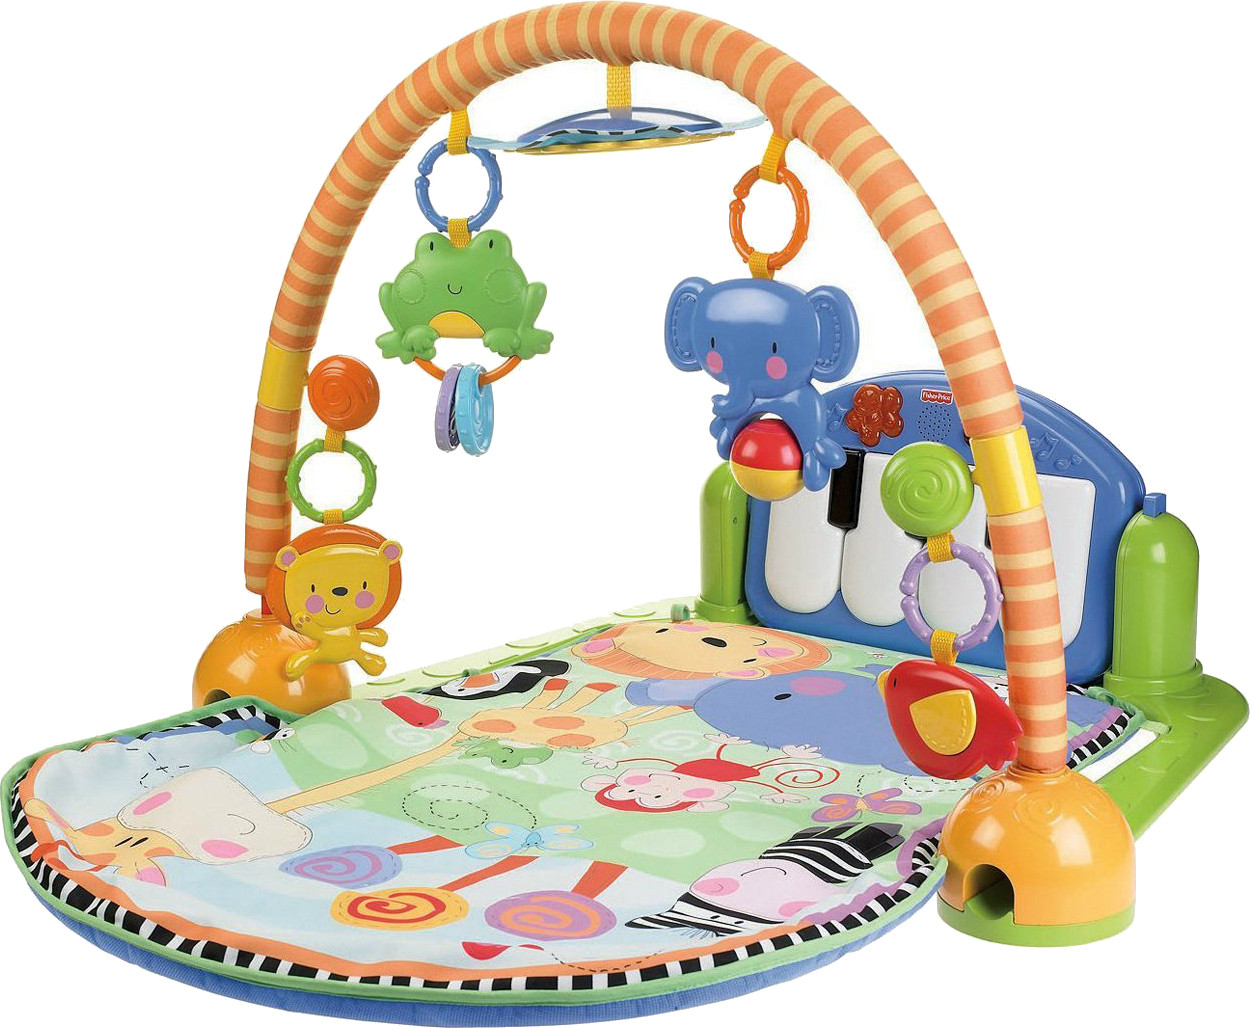 Newborn Baby Activity Toys Fisher Price Kick And Play Piano Gym Kick And Play Piano